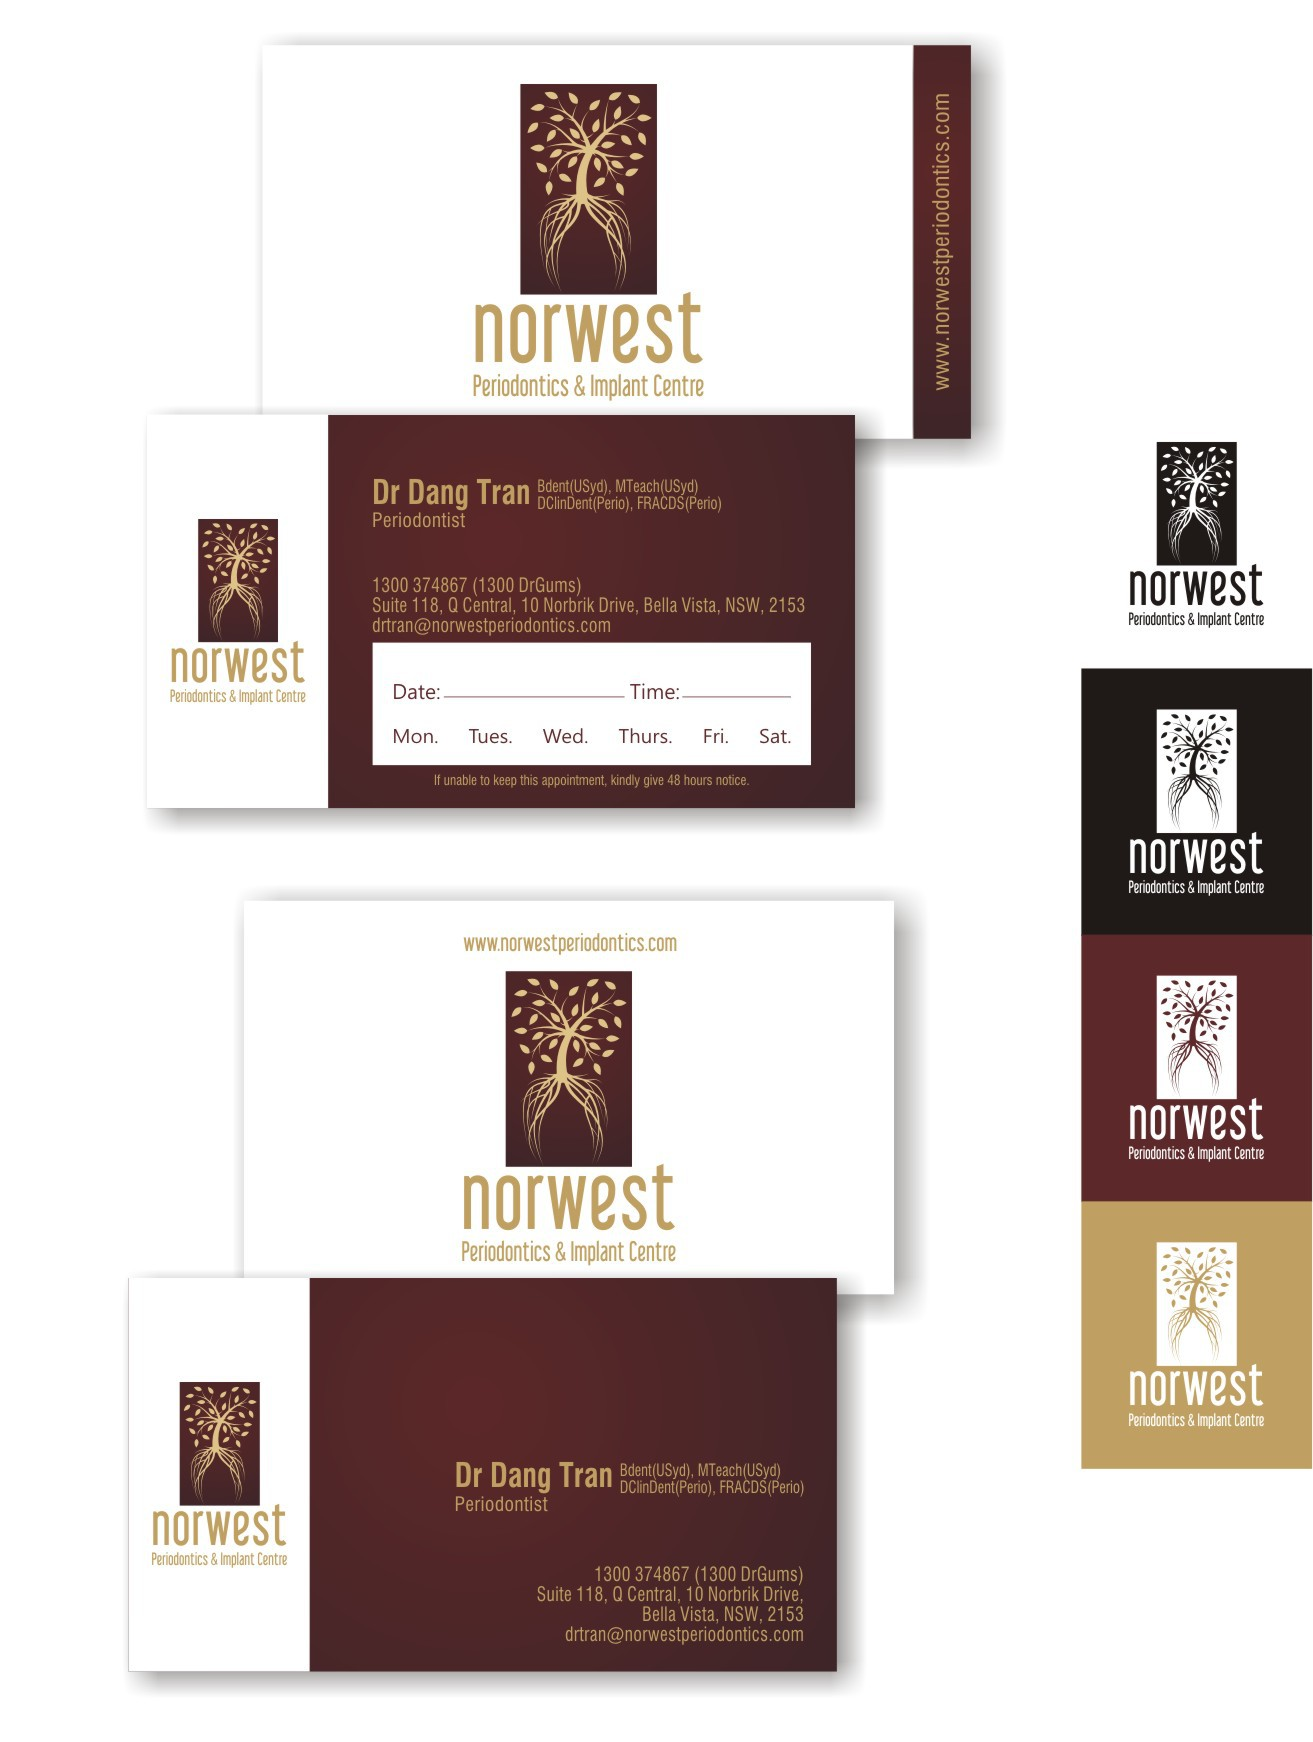 Create the next logo and business card for Norwest Periodontics & Implant Centre